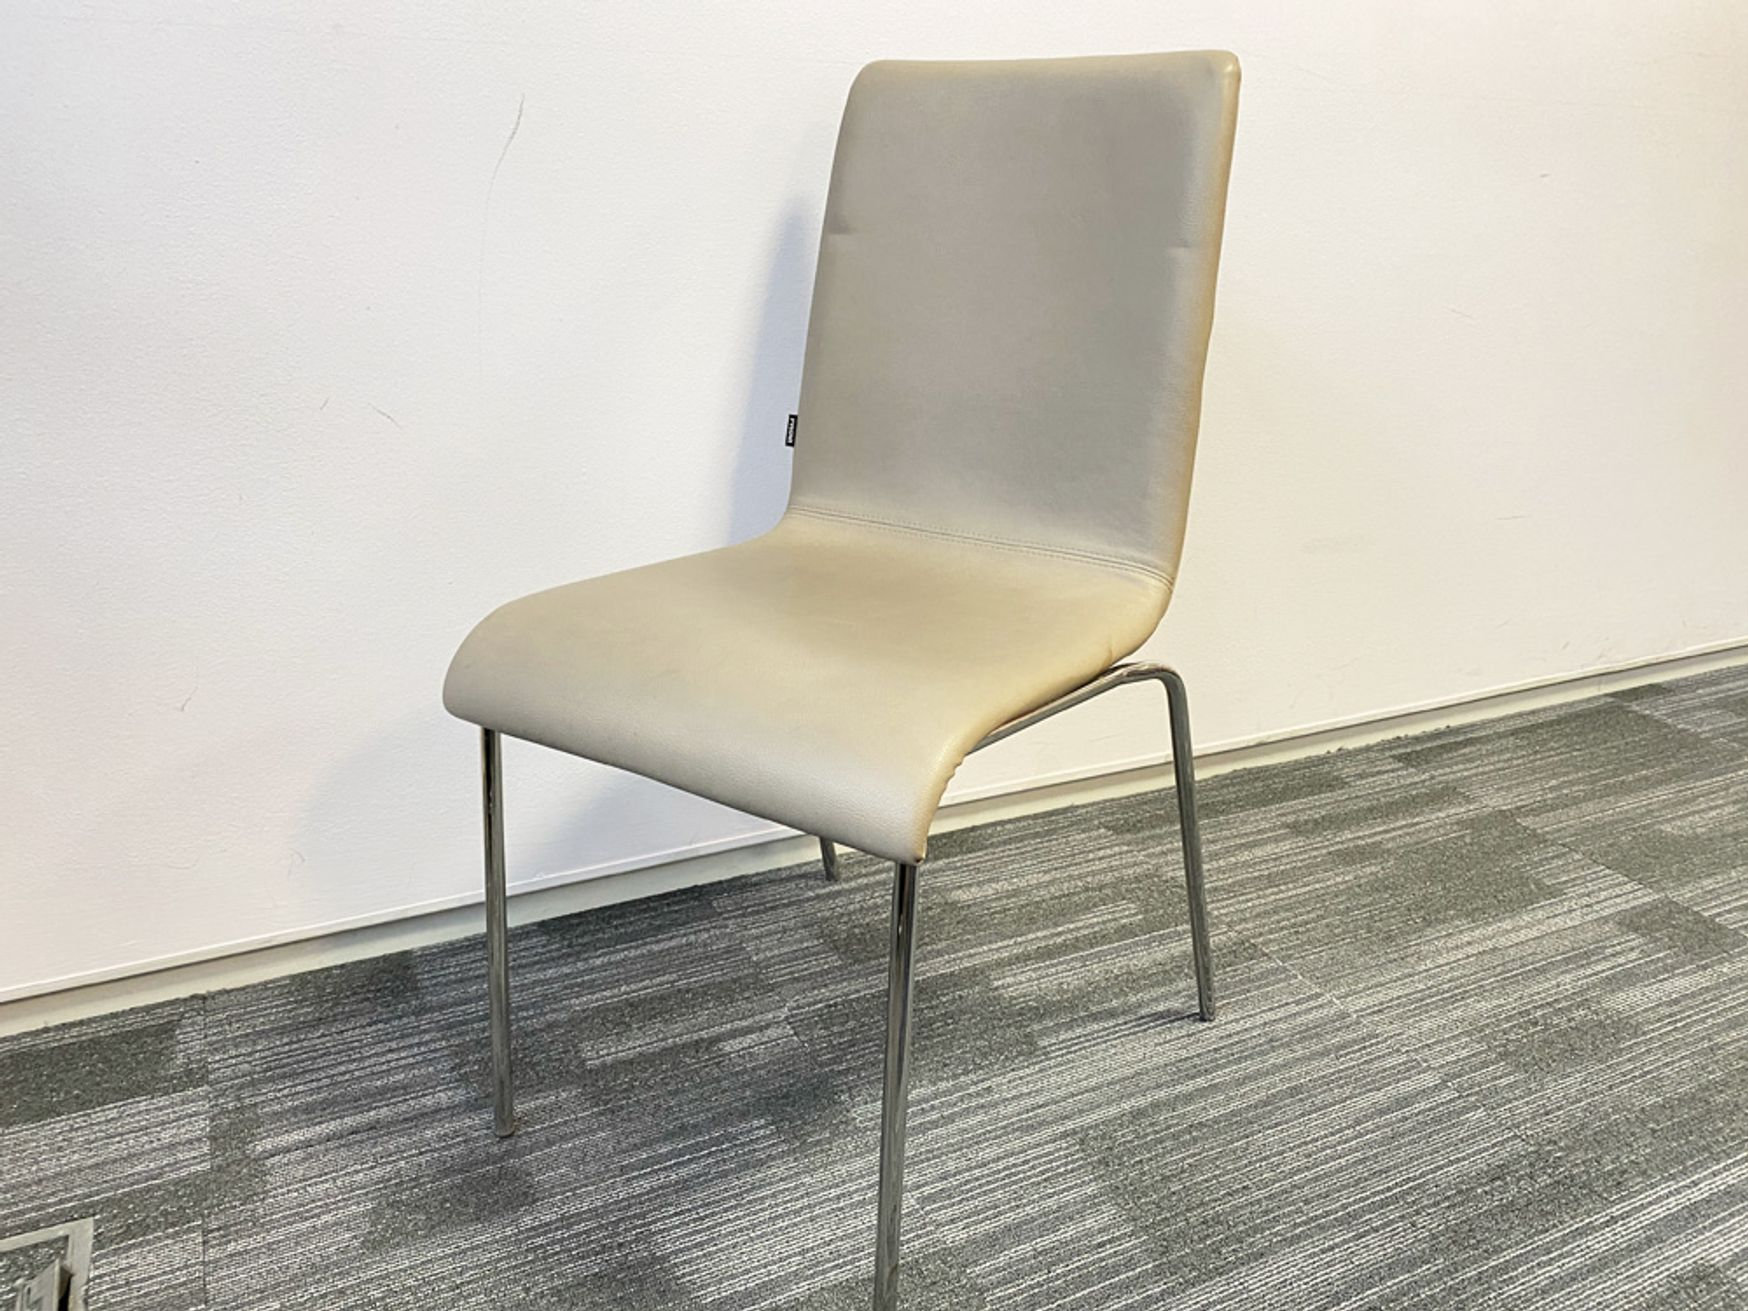 Used 'Frovi' stacking chairs upholstered in cream leather with chrome legs